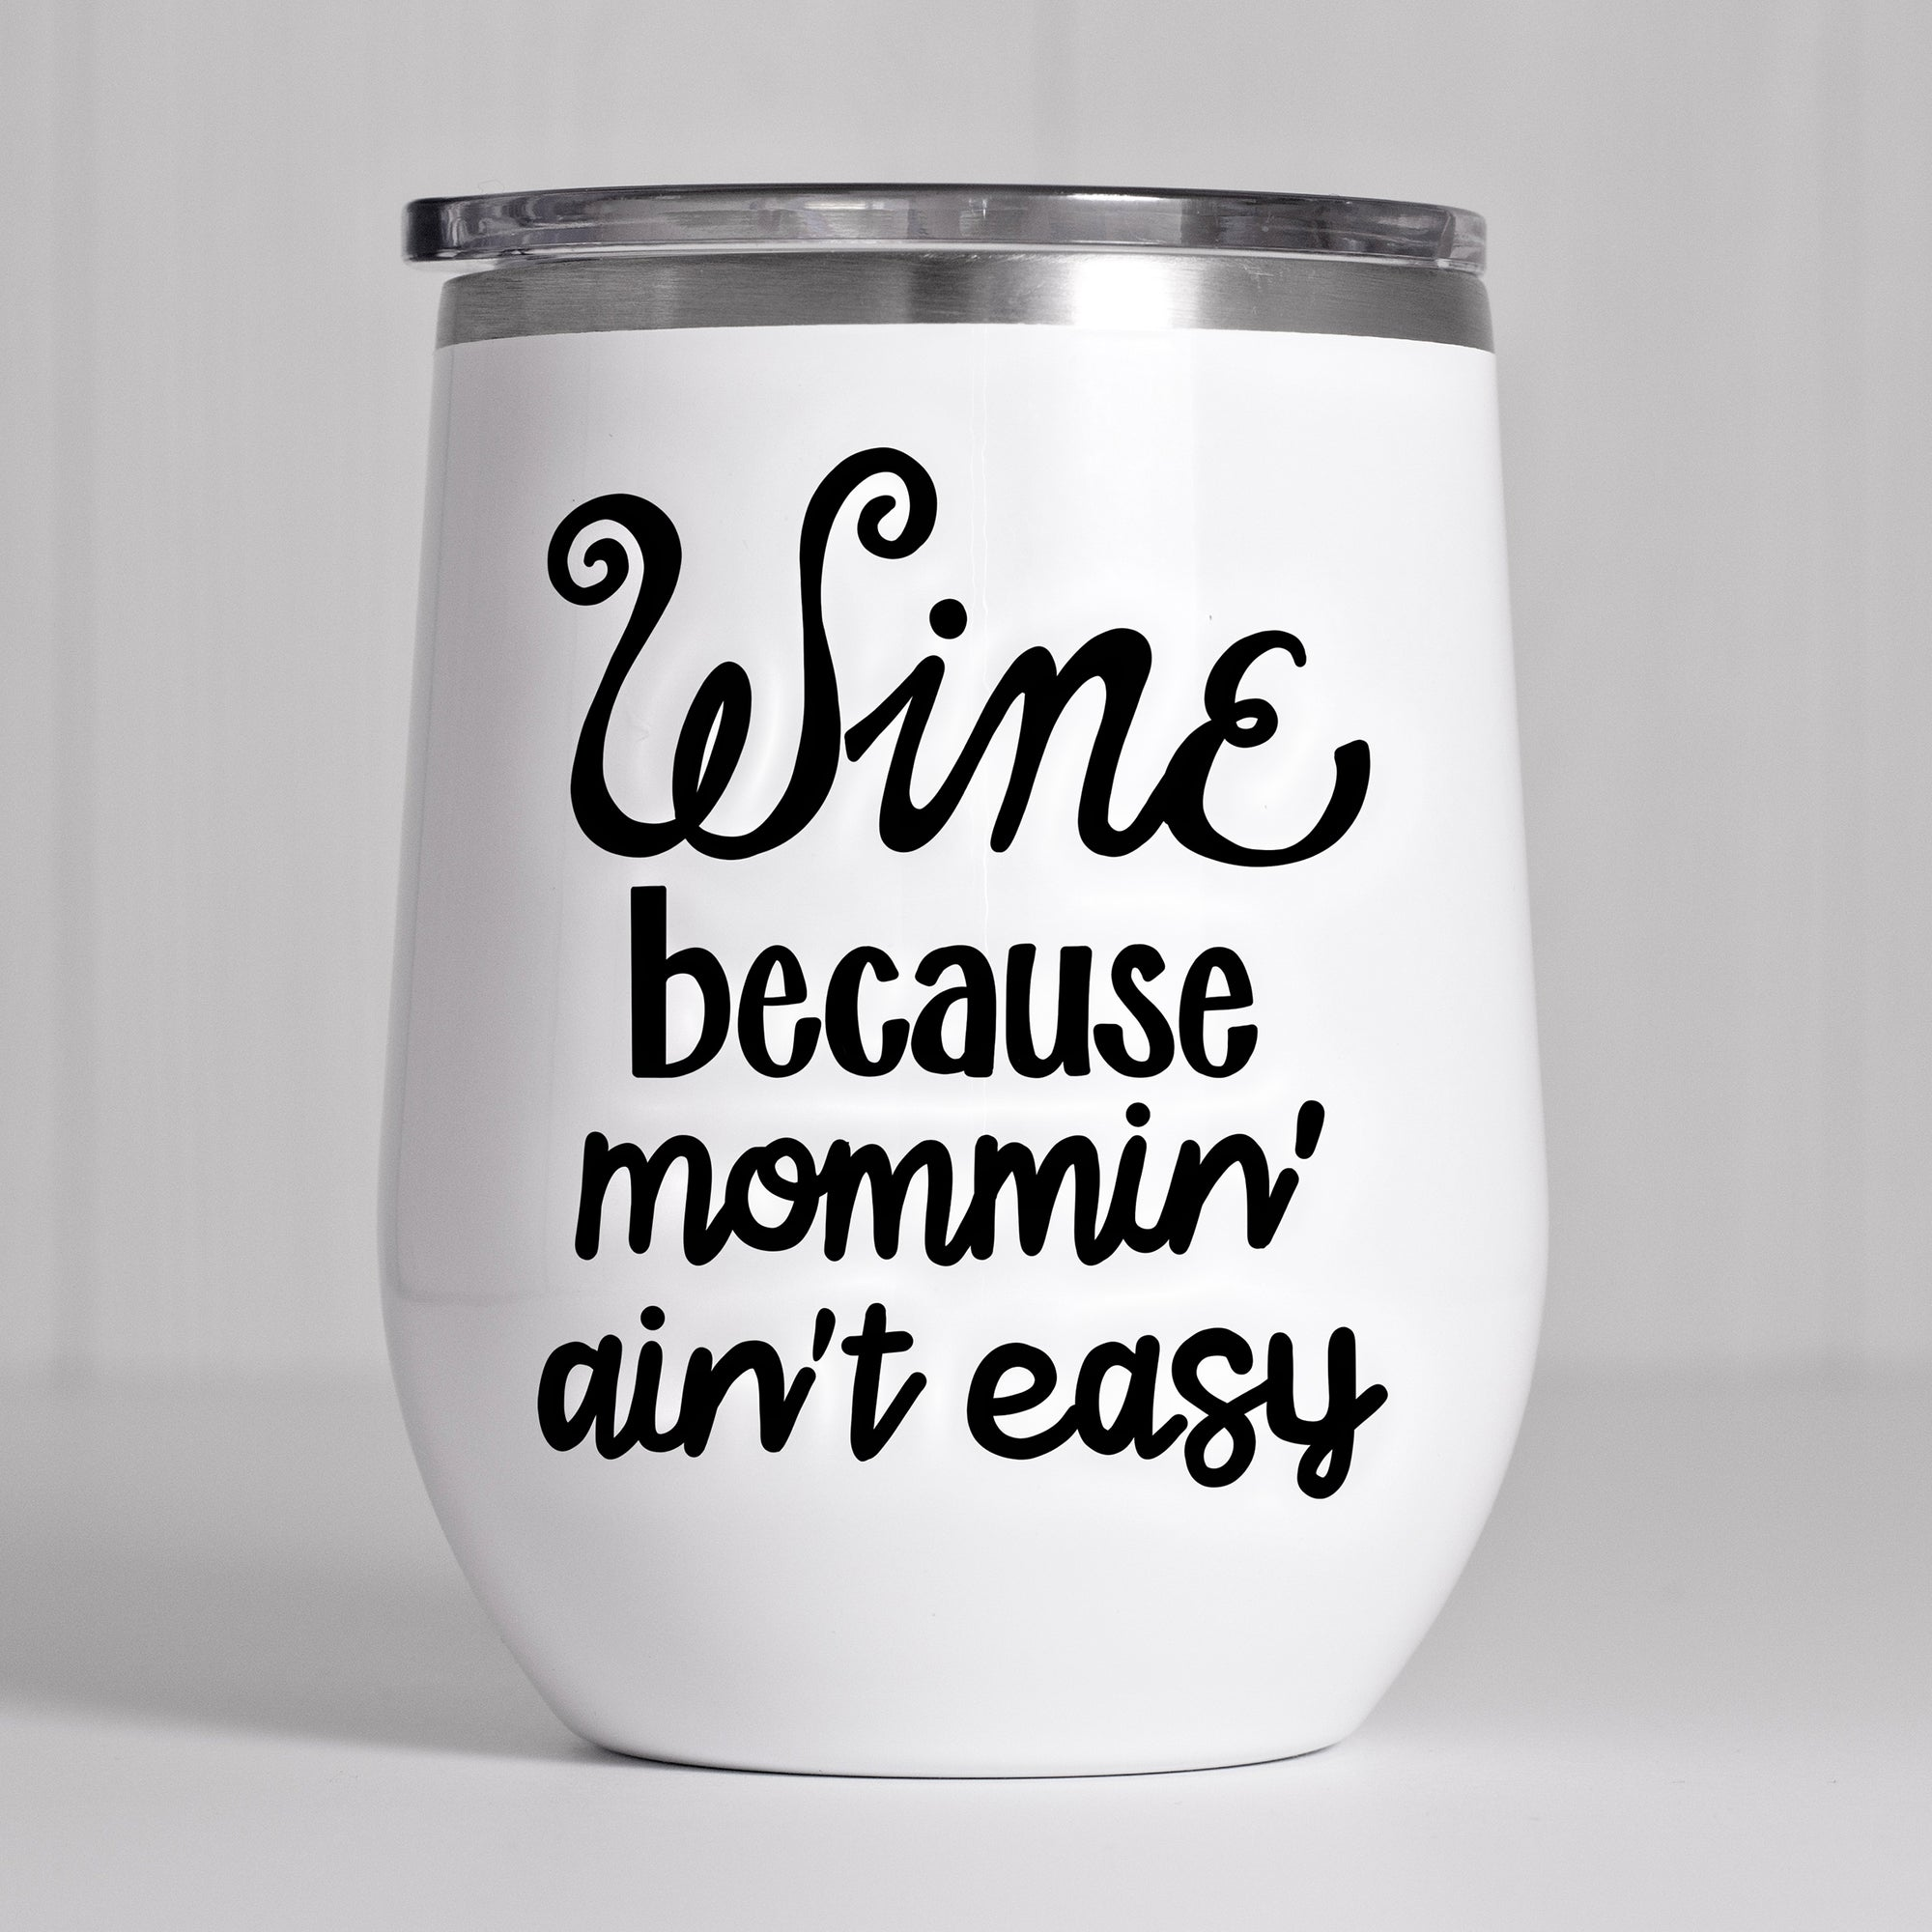 WINE SVG FILE, Funny Wine Glass SVG File, Wine Glass Saying SVG Cut File, Wine Glass Quote SVG Funny, Wine Because Mommin' Ain't Easy SVG